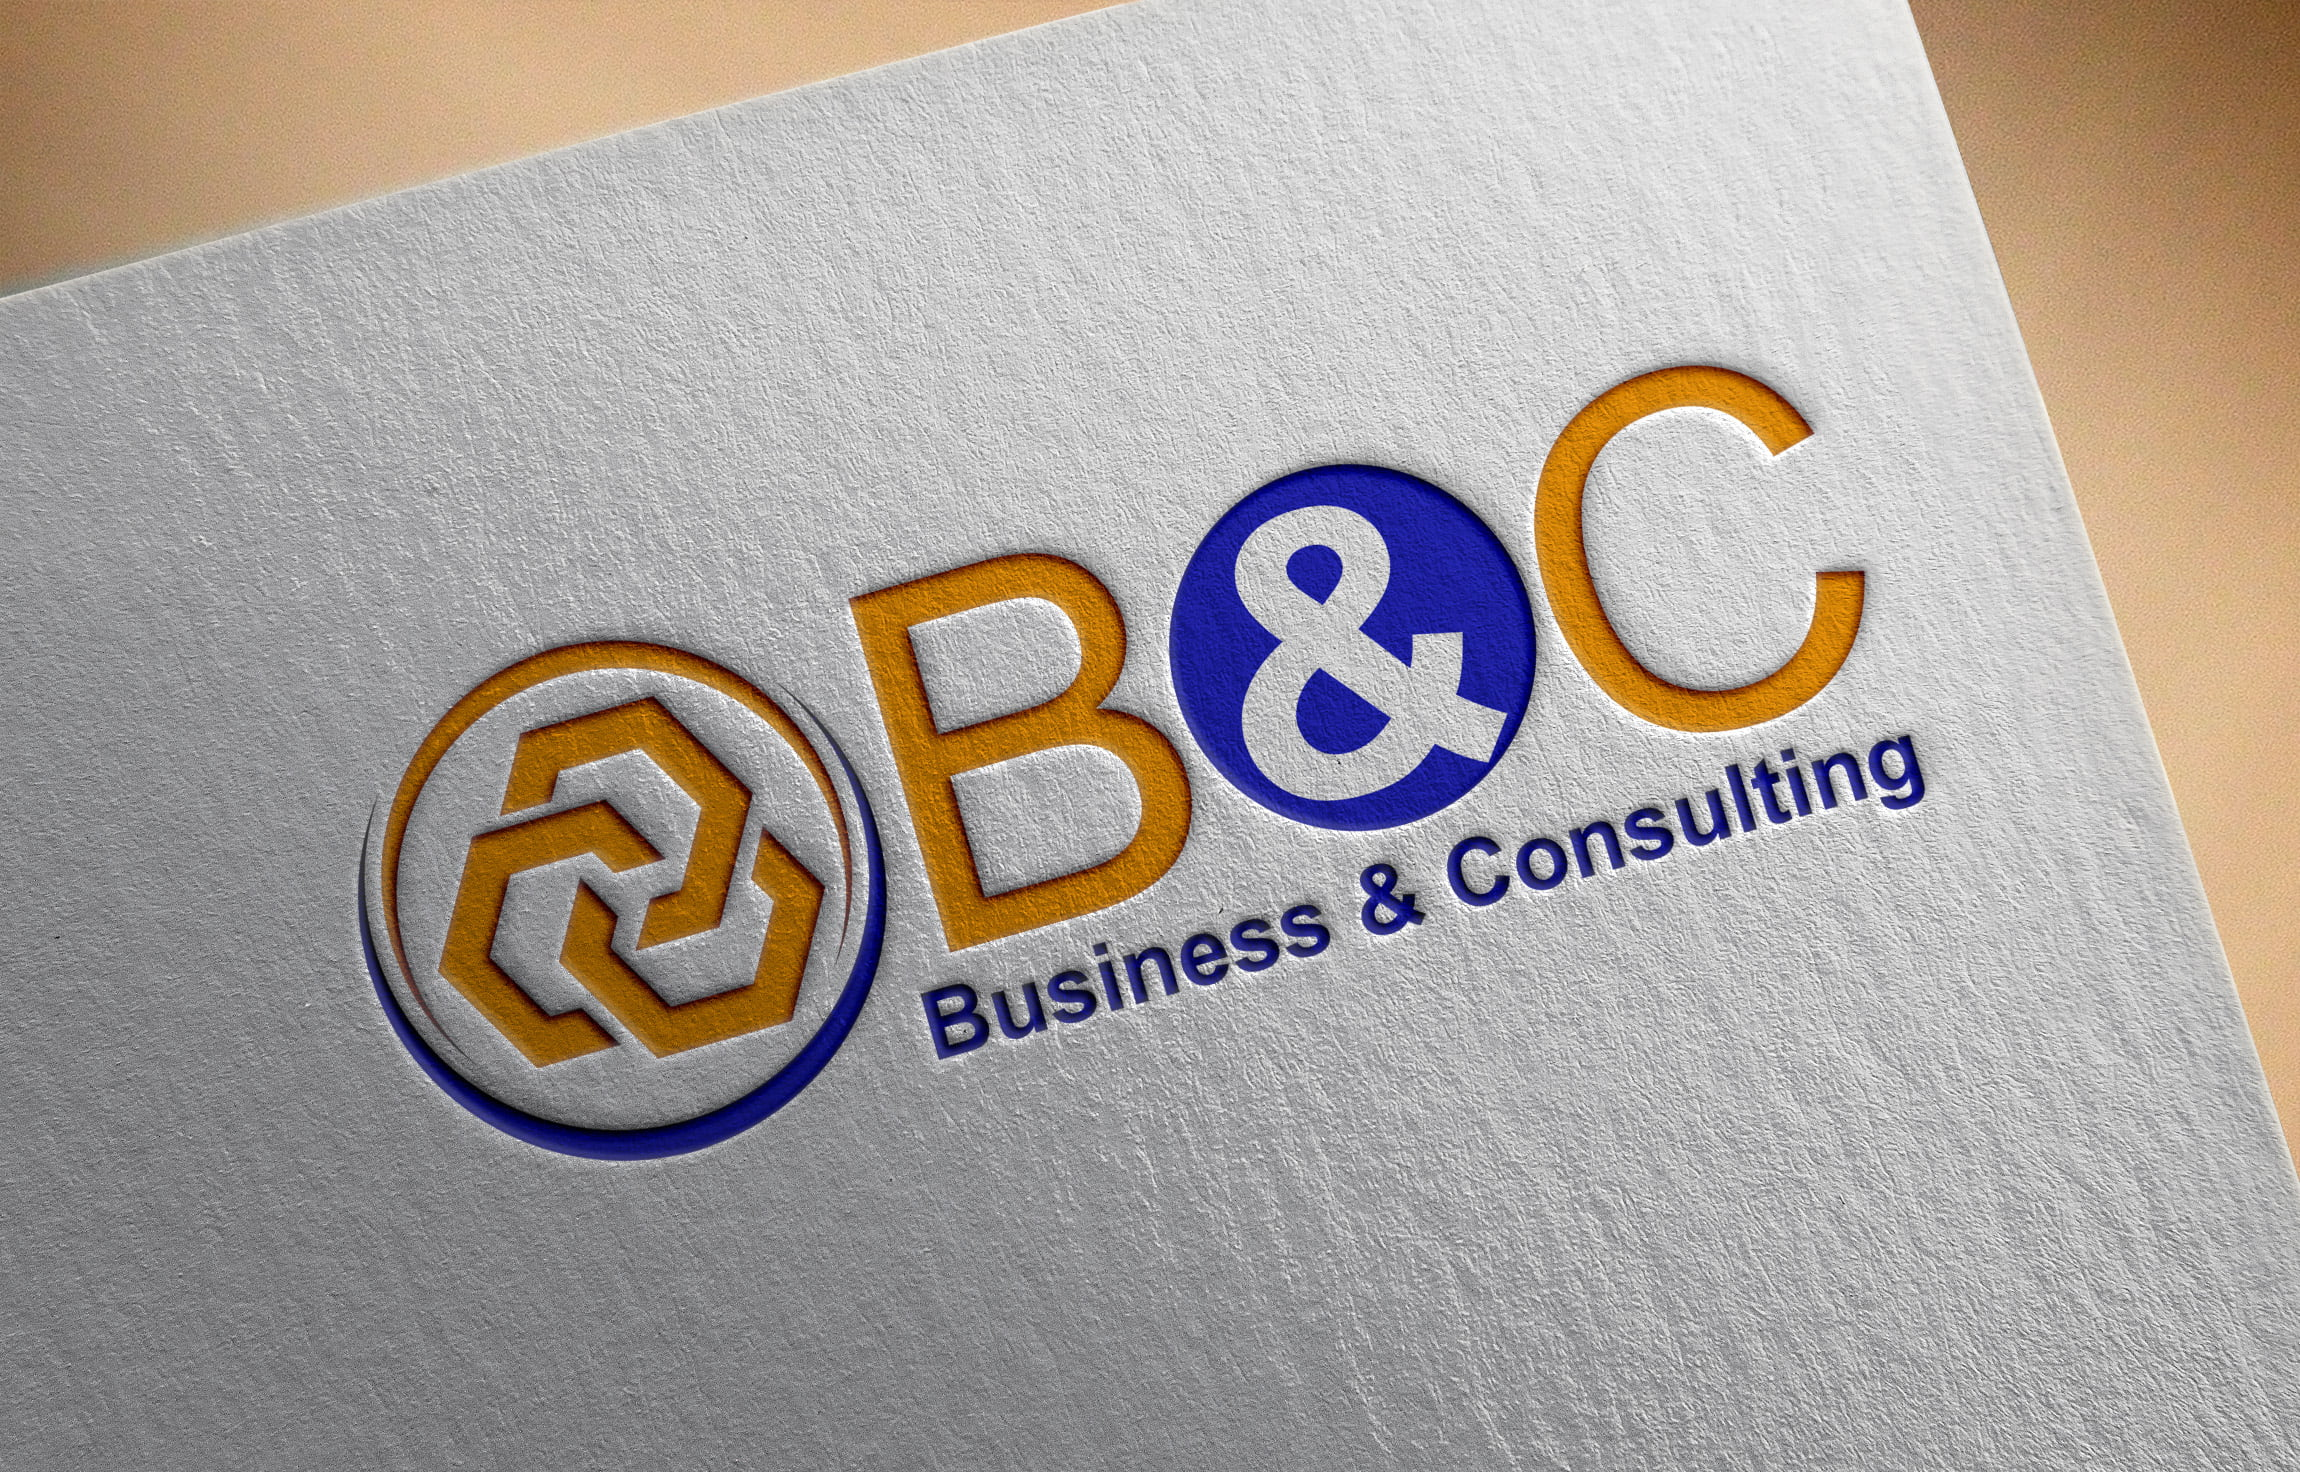 Business consulting logo Design on Paper mockup